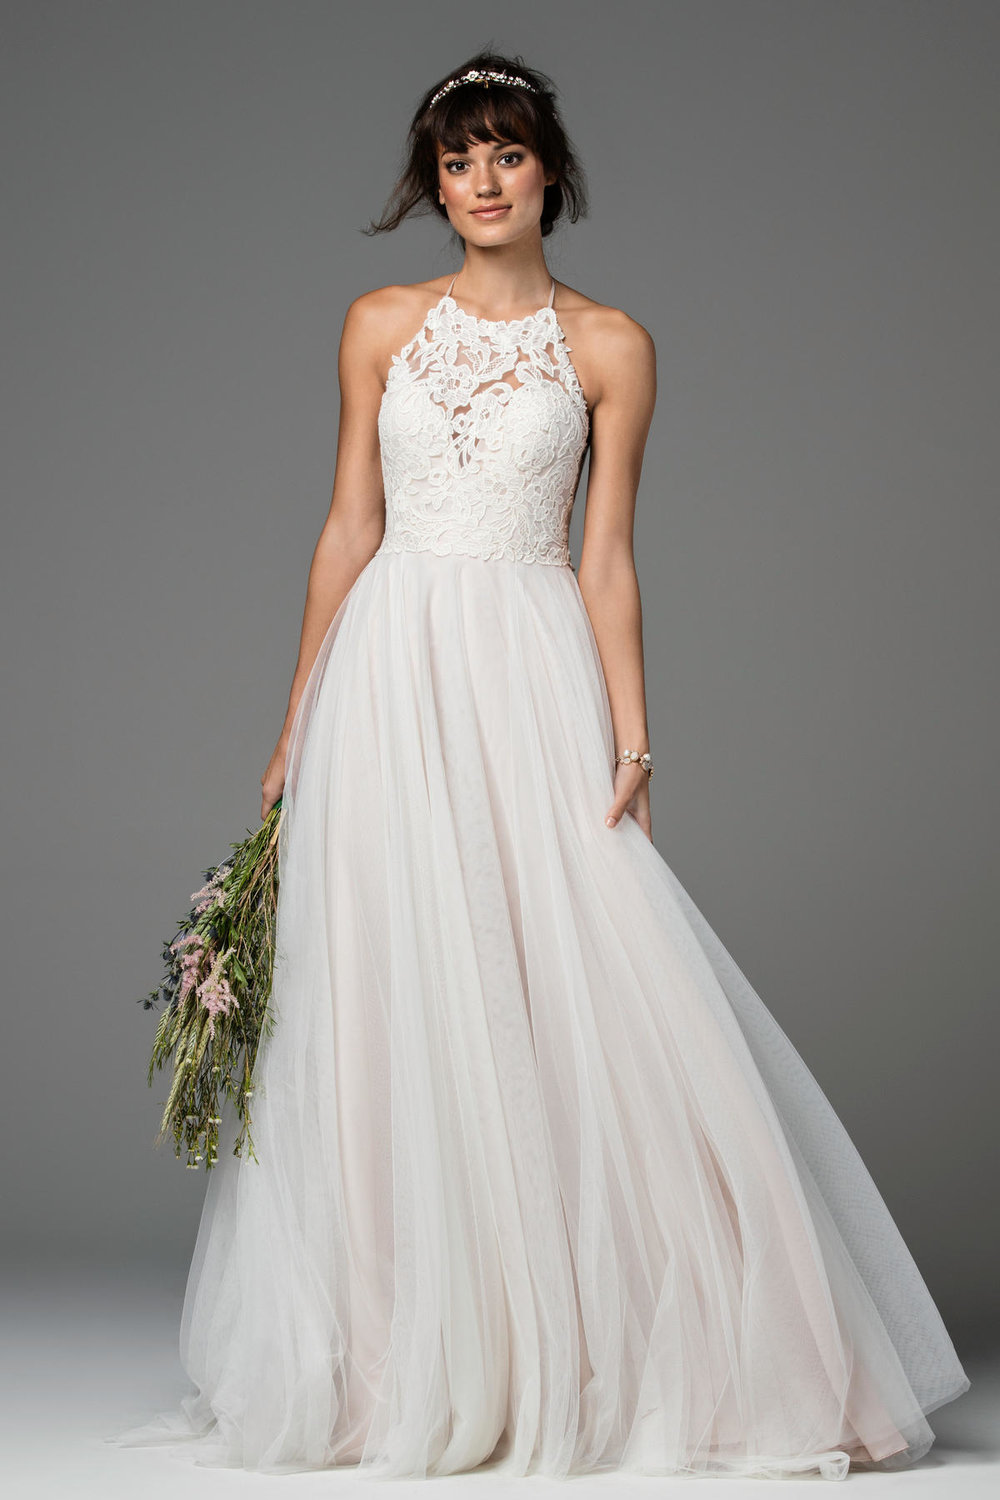 MGC-Website-WillowbyBridal-Esperance.jpg